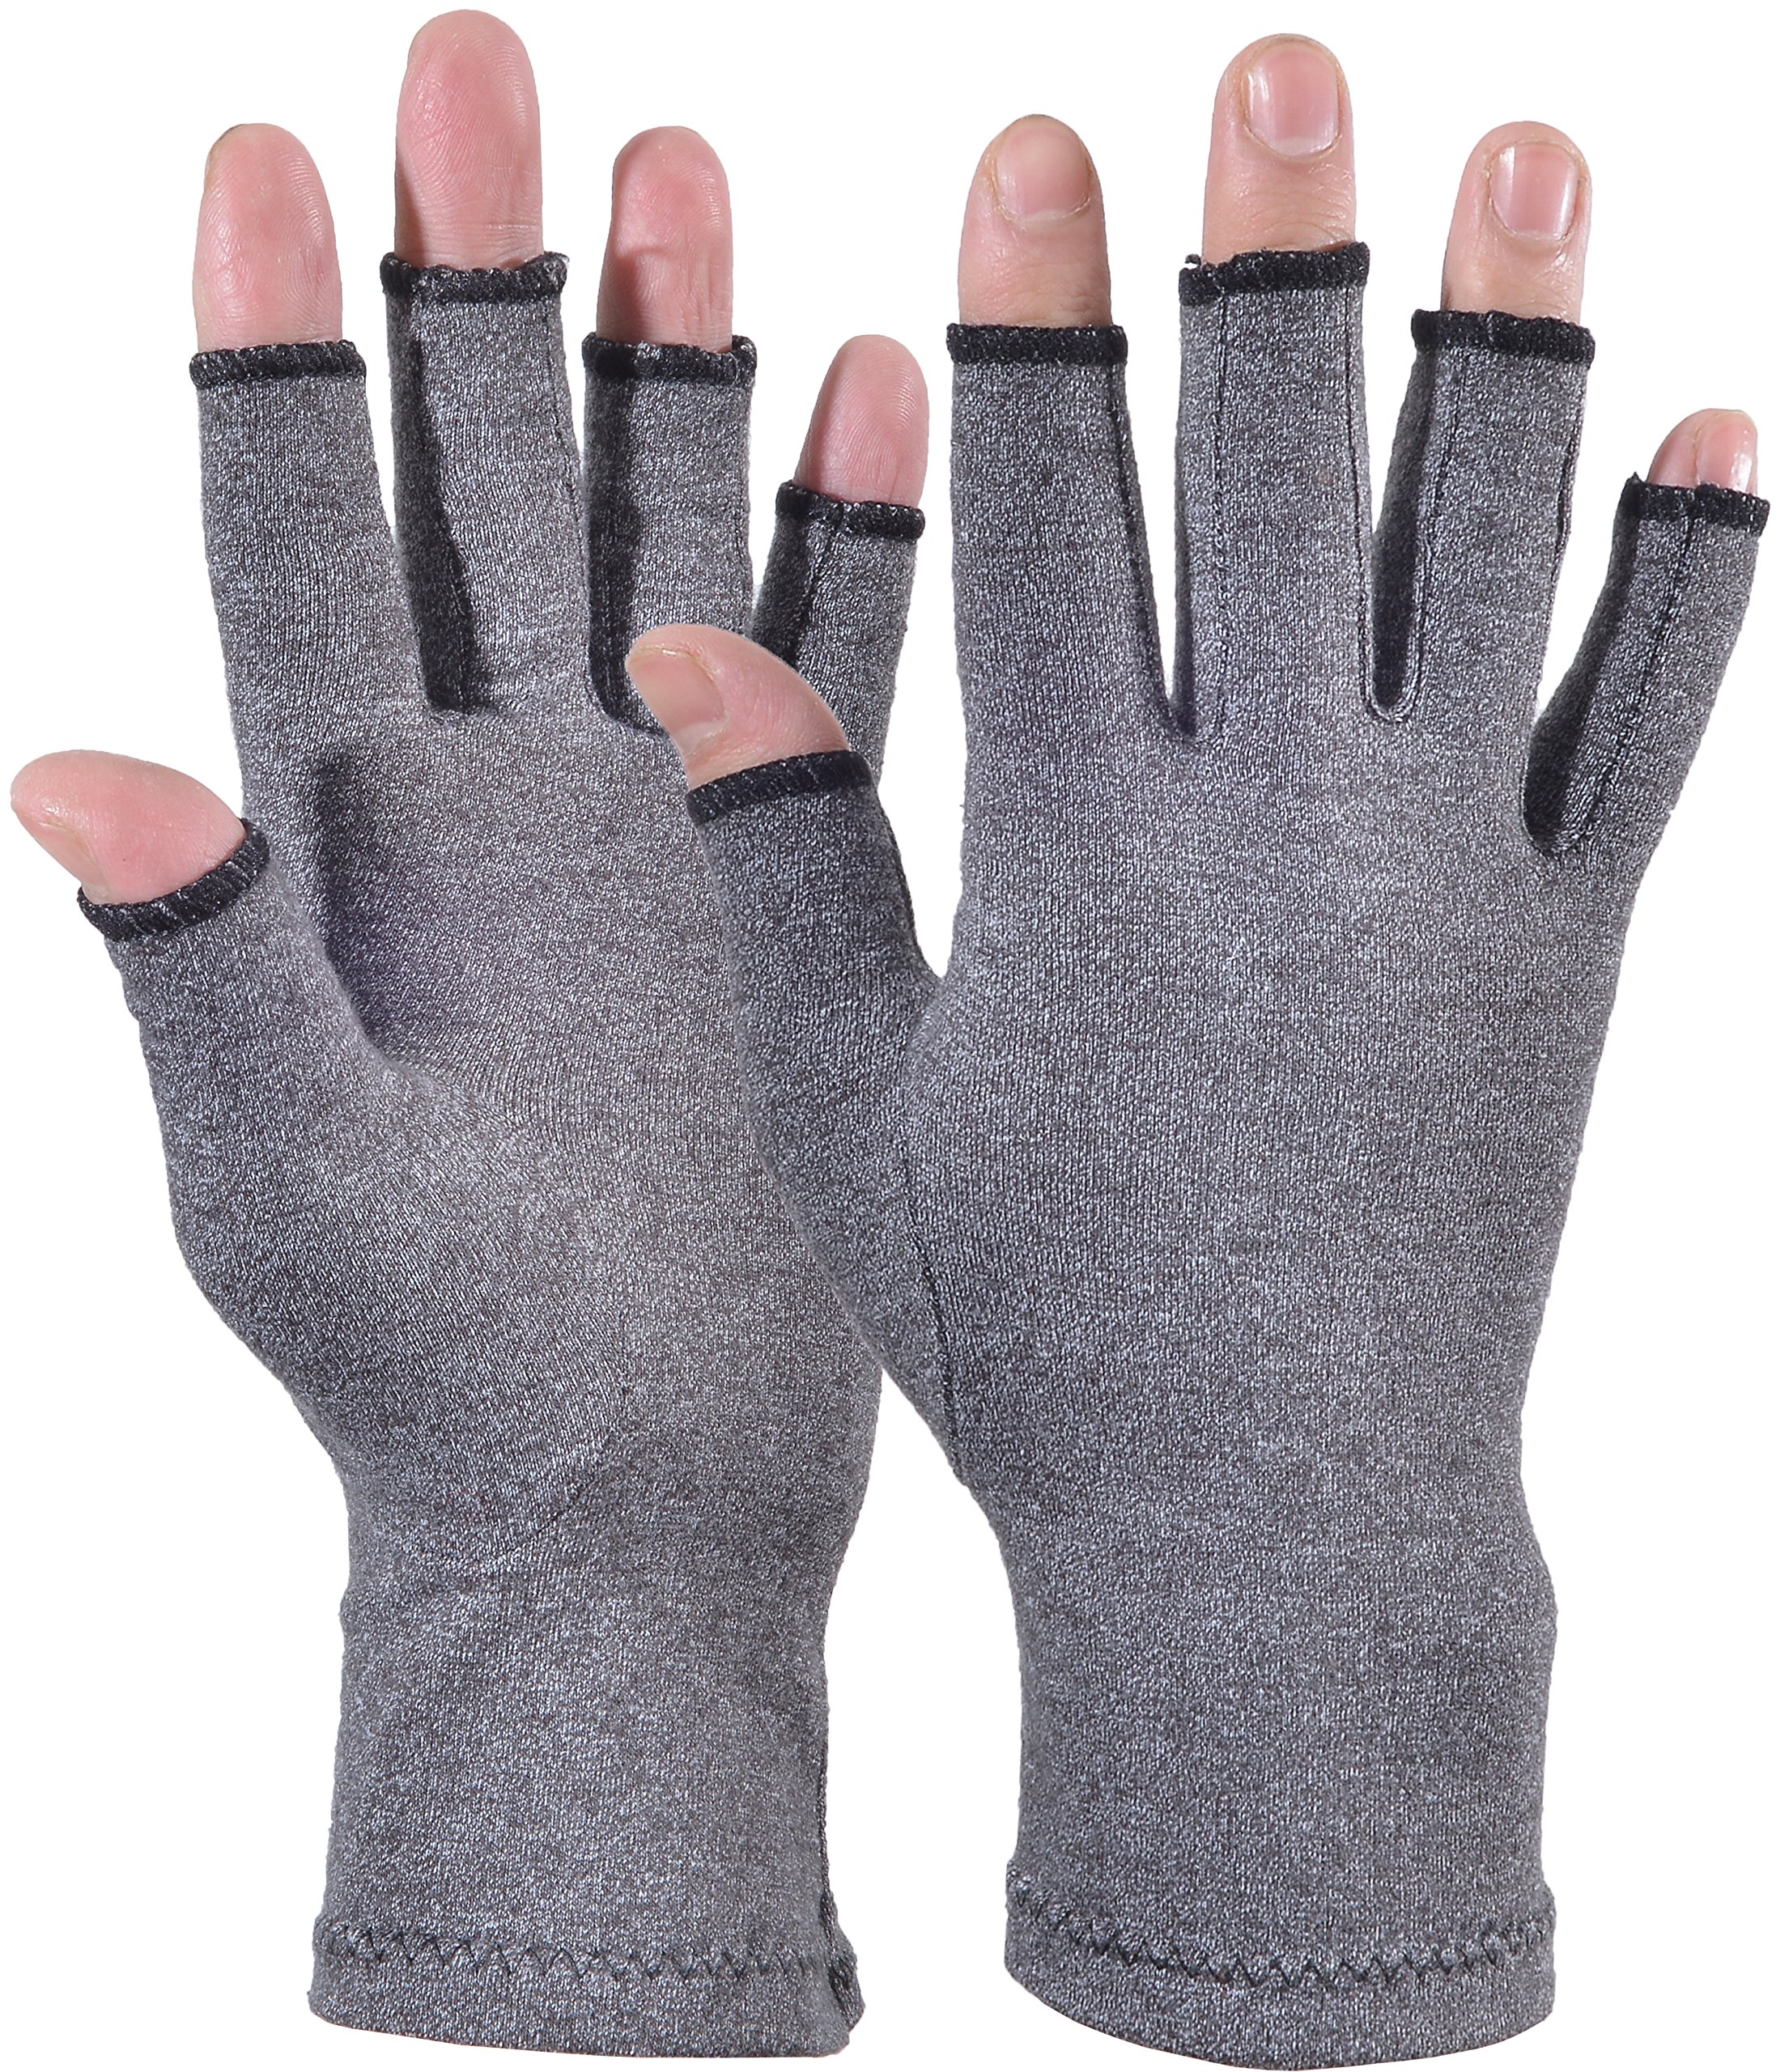 Yuhan Pretty Arthritis Gloves - Compression Fingerlss Gloves Relief Joint Pain Symptom of Rheumatoid & Osteoarthritis, Open Gloves for Daily Work and Typing - Men & Women (Gray, L)